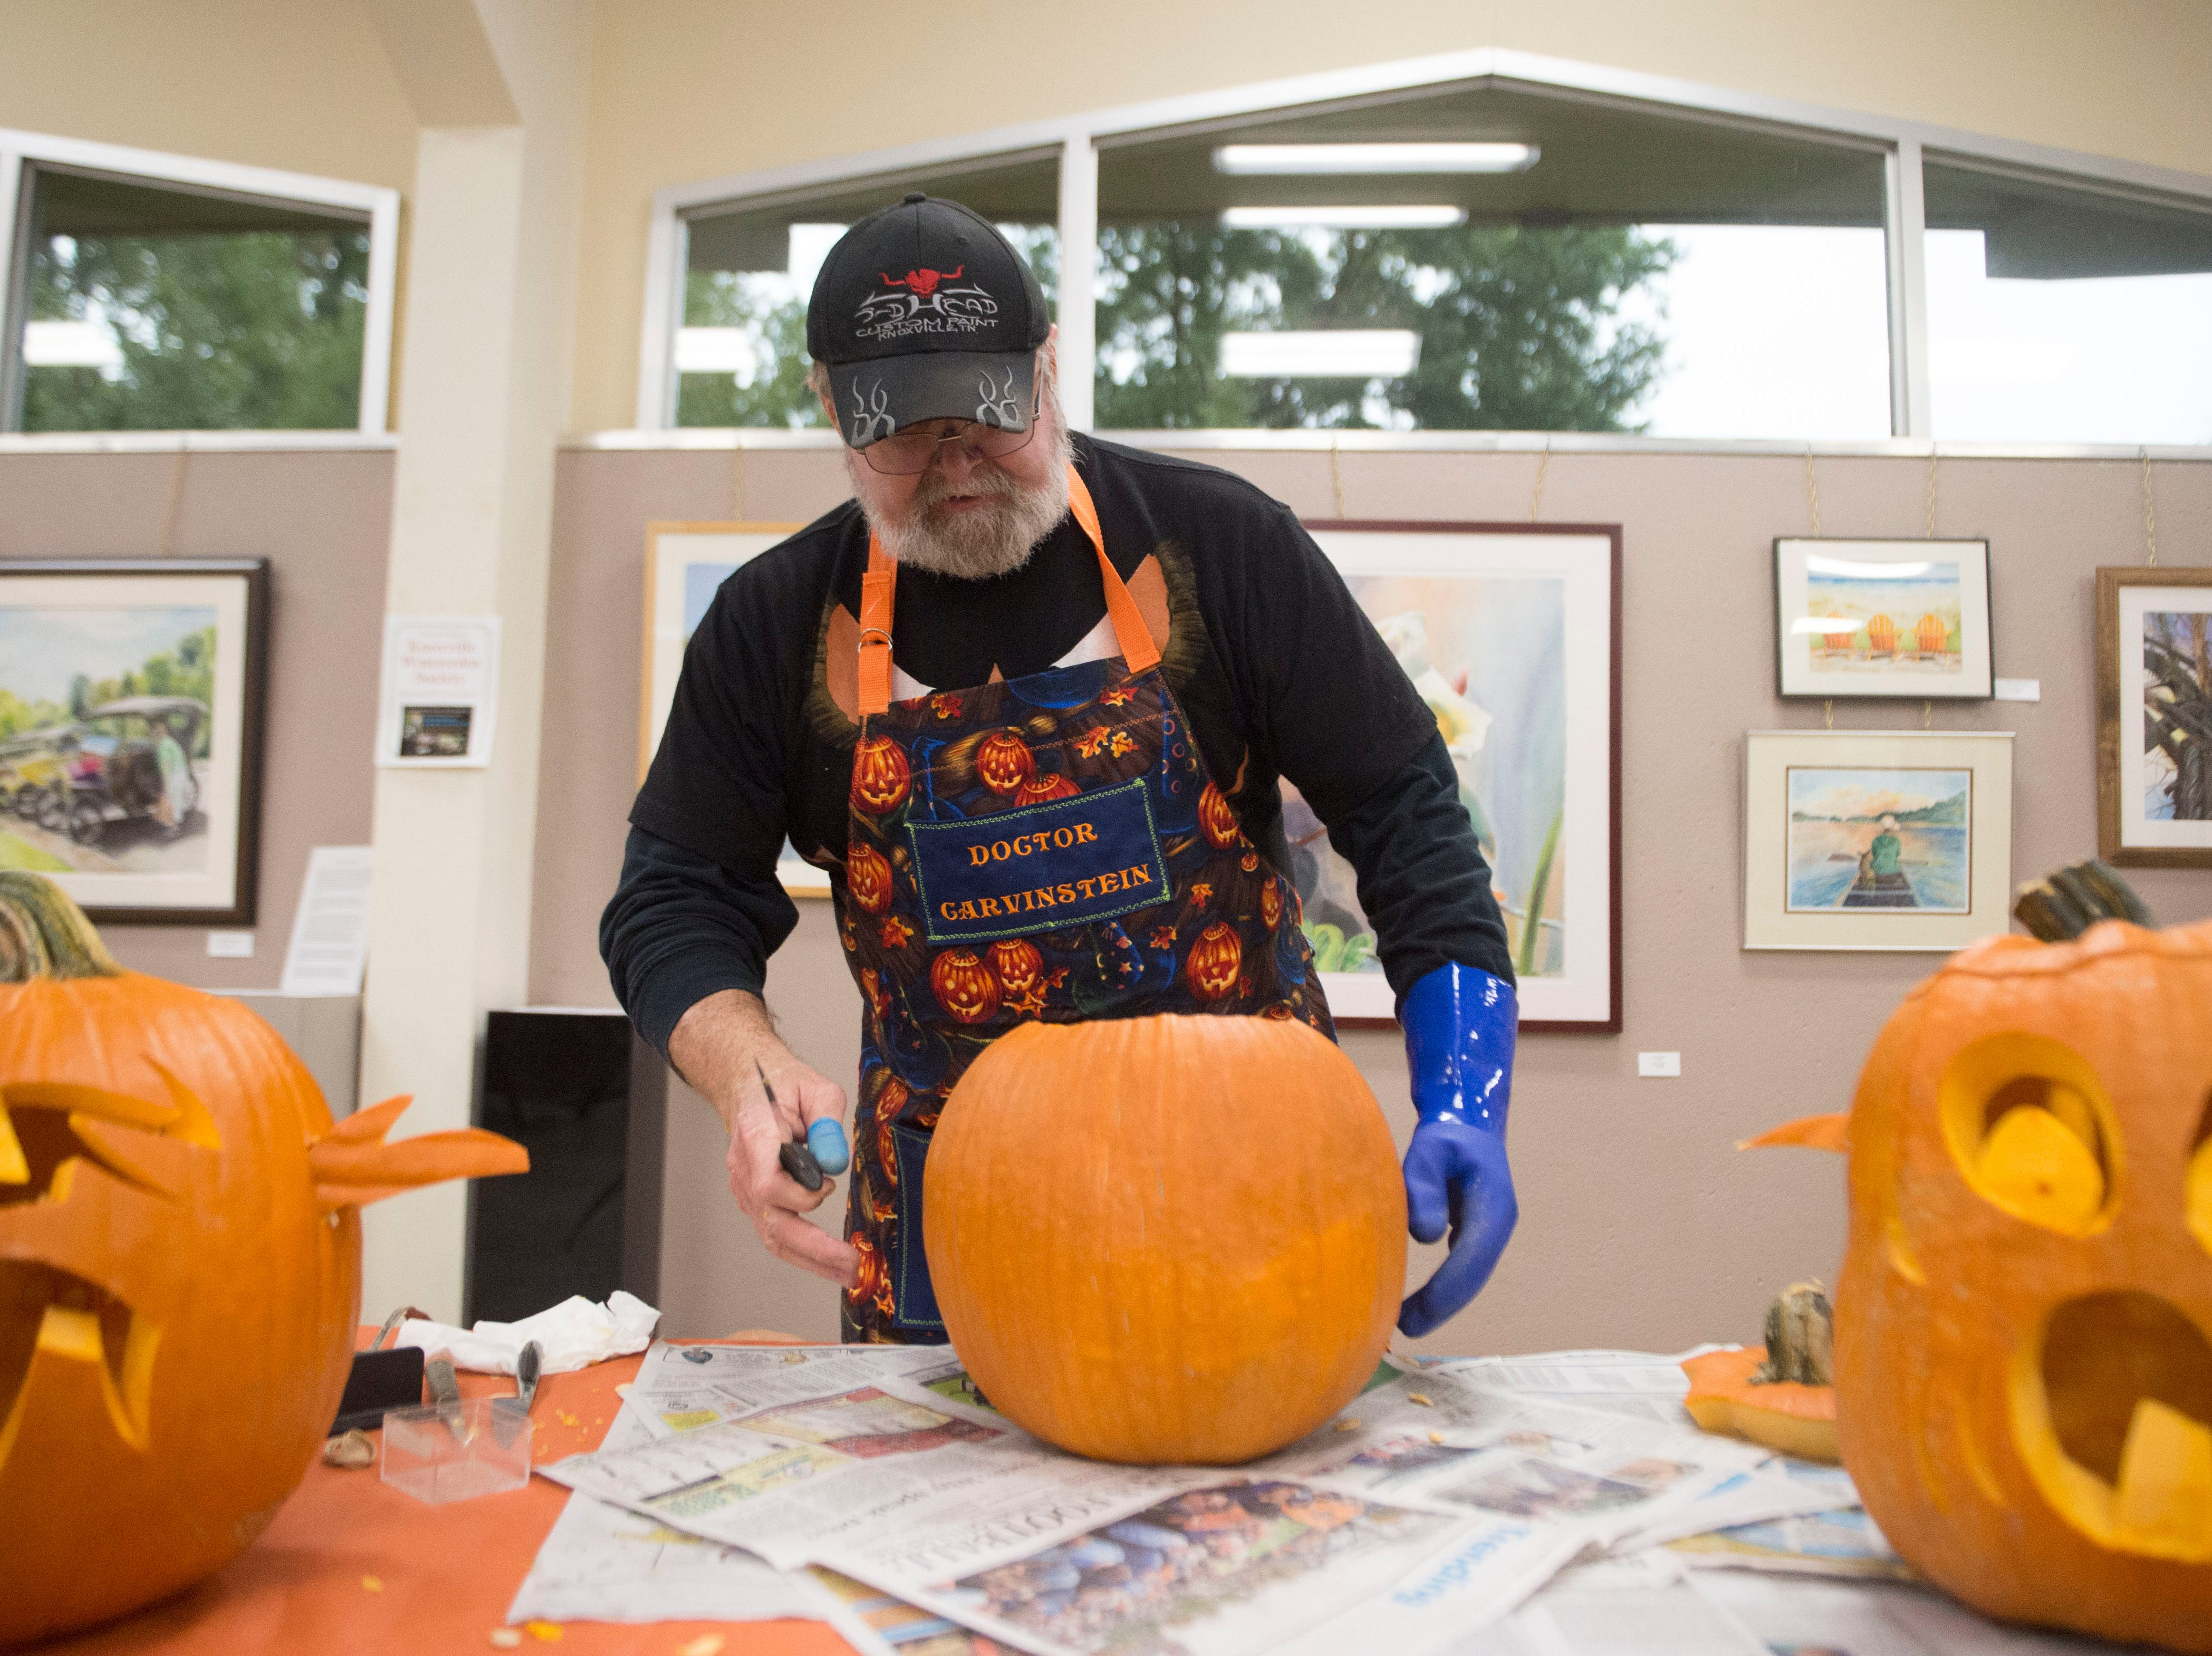 Artist Ken Clayton, also know as Dr. Carvinstein carves pumpkins at the Fountain City Art Center, Tuesday, Oct. 16, 2018. Clayton has been carving for over 50 years.